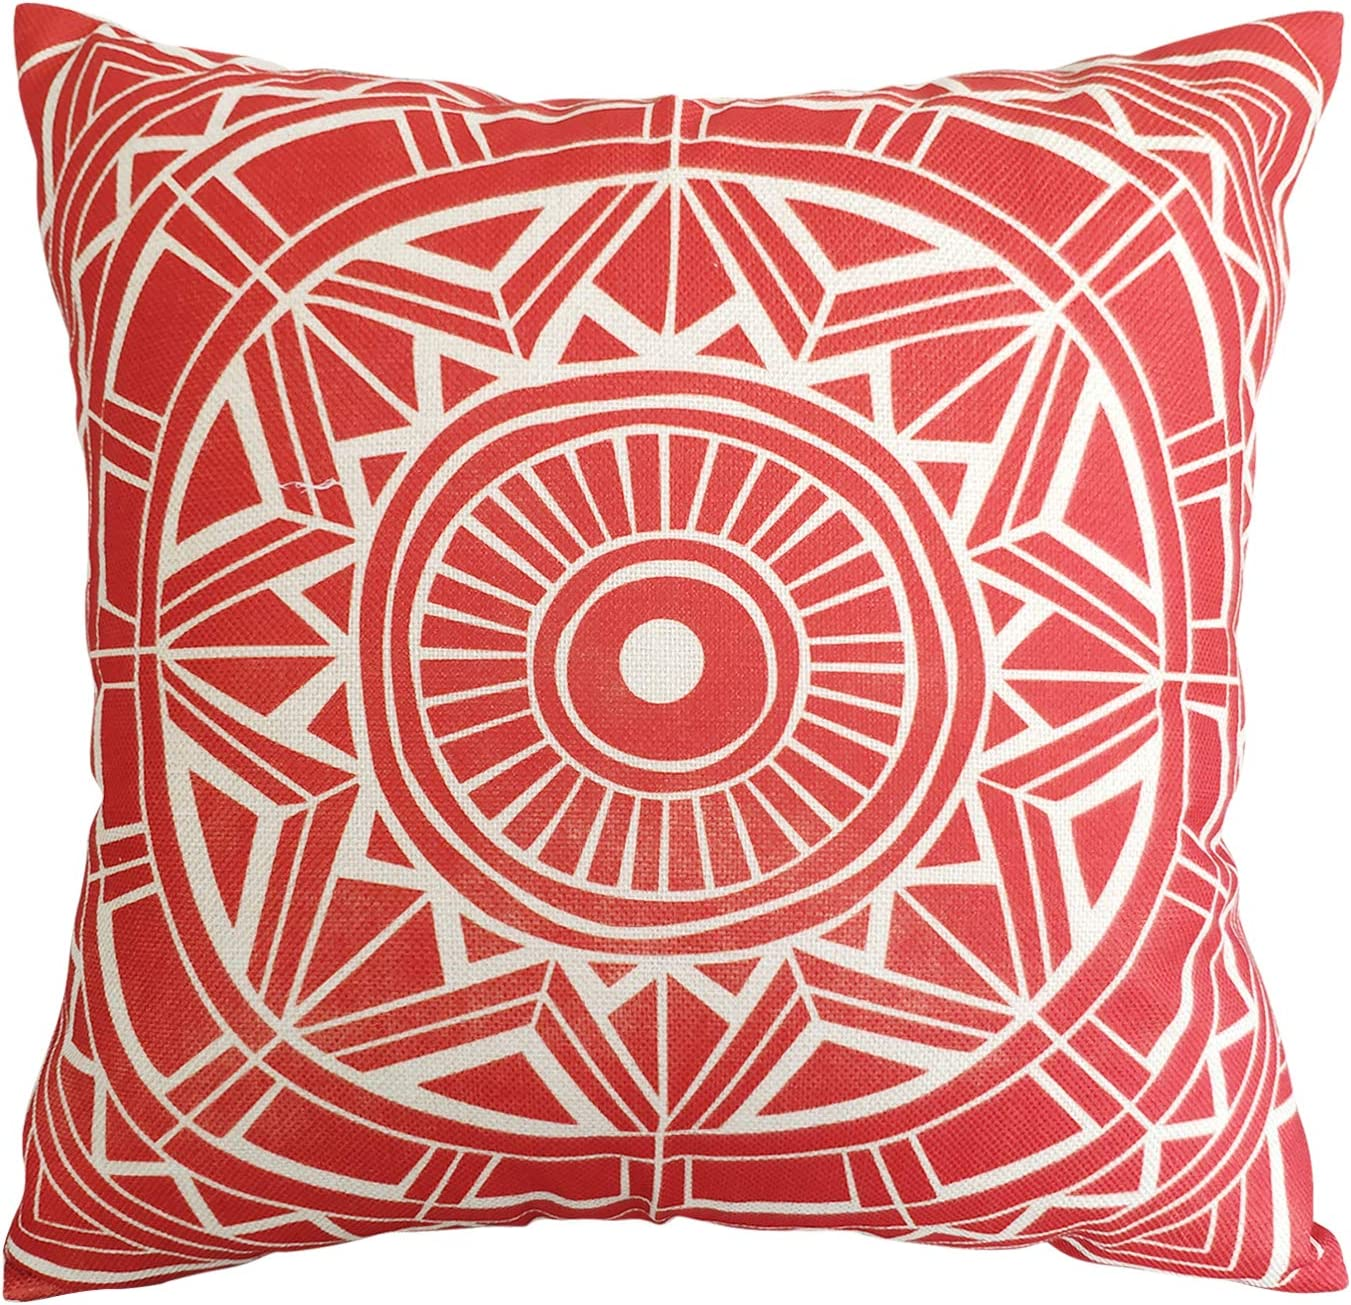 Cushion Covers Size 18 x 18 Printed 100/% Percale Cotton Decorative Floral Circle